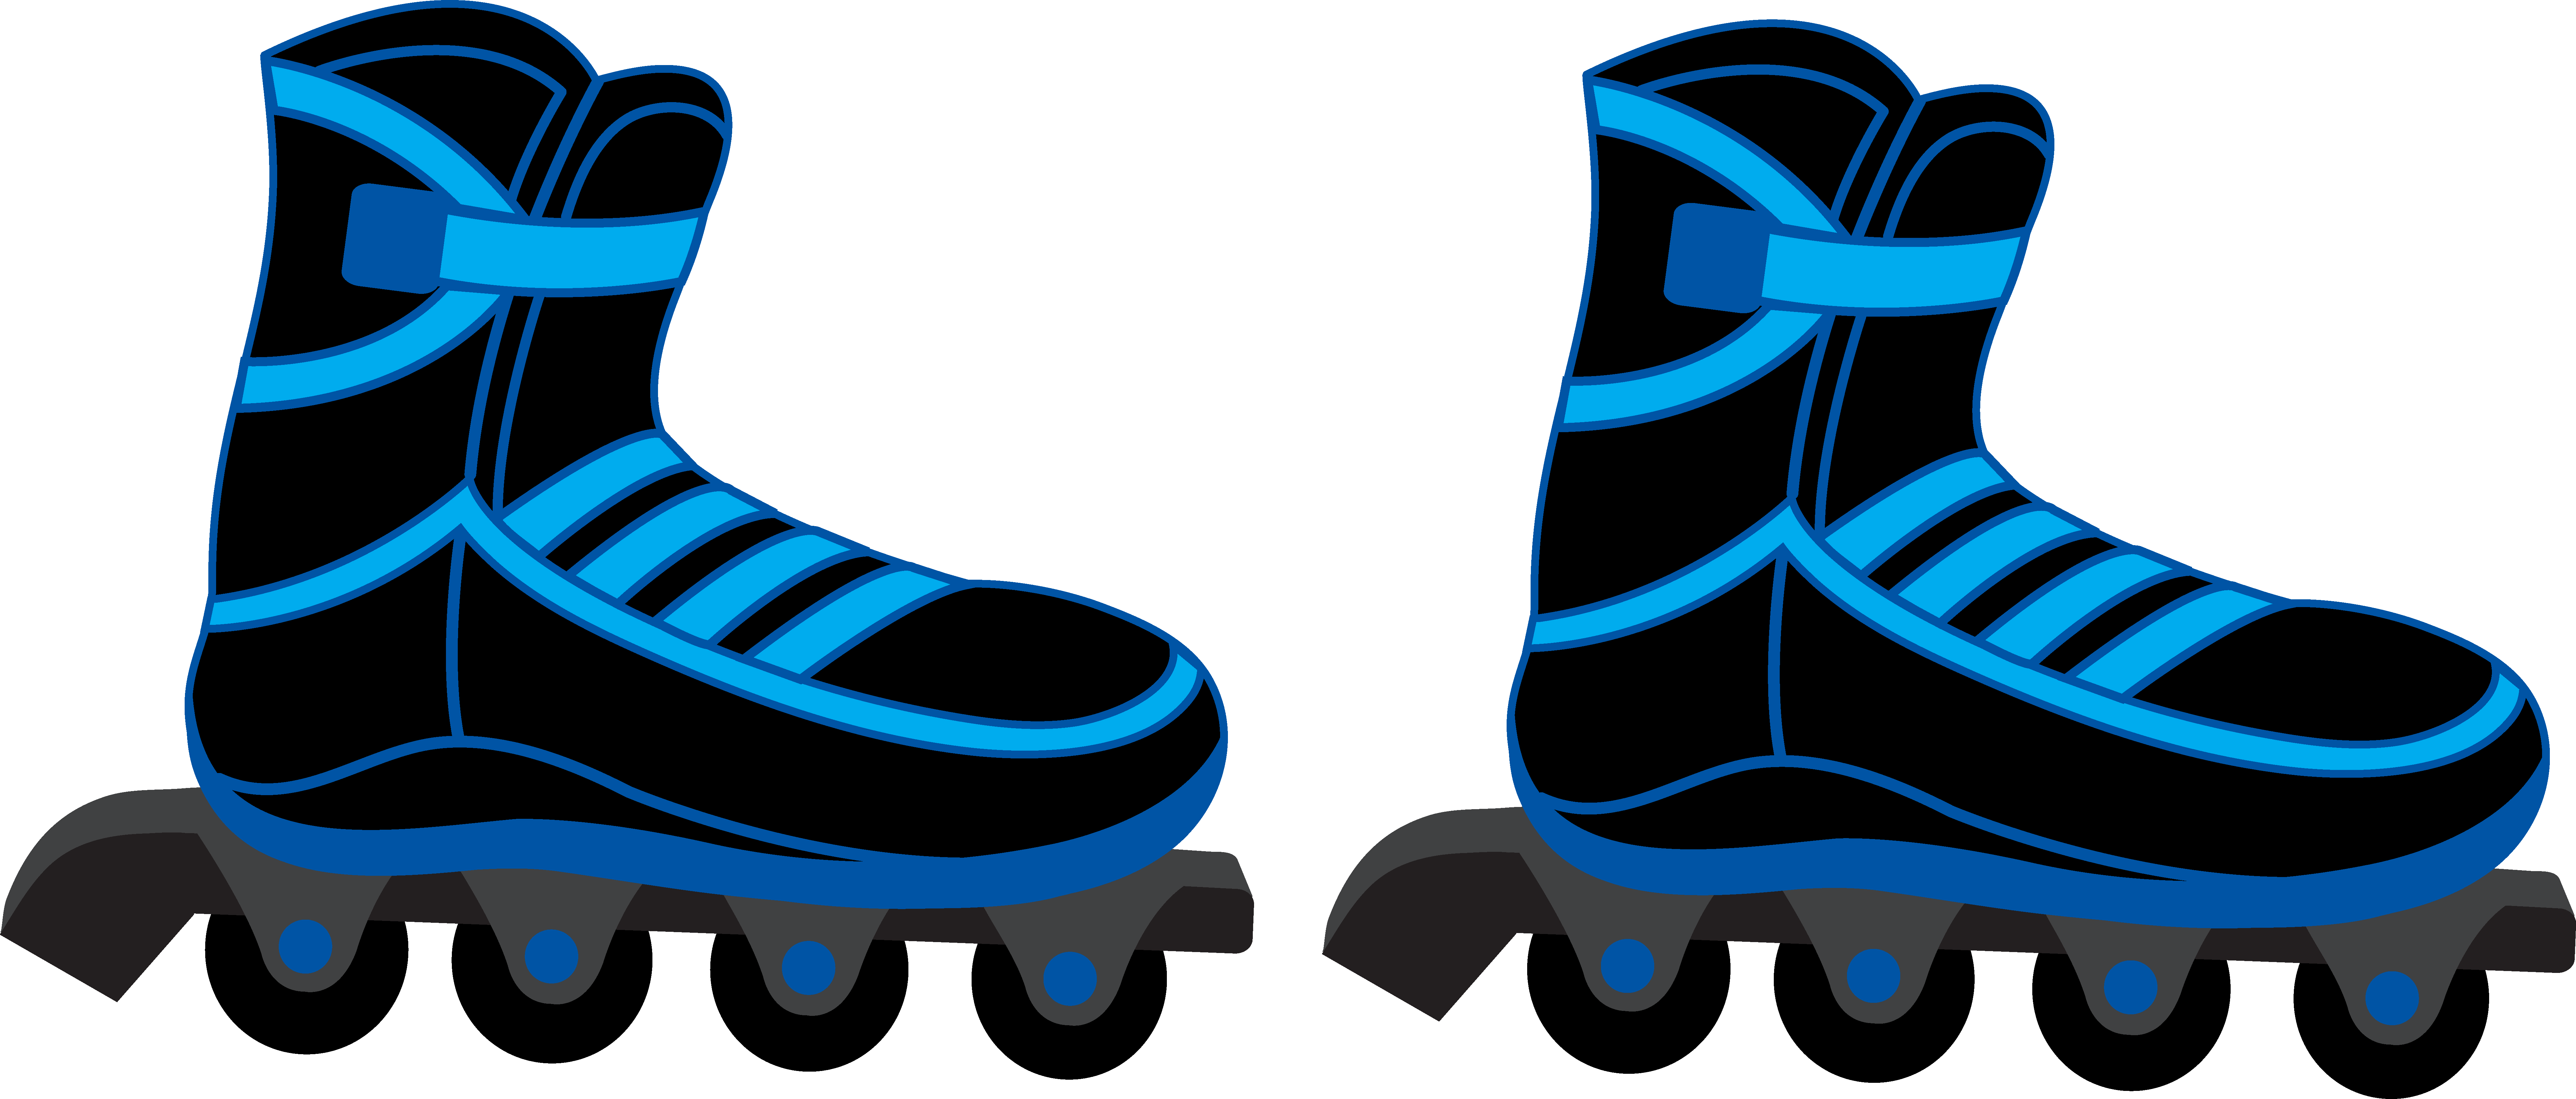 8272x3530 Roller Skate Clipart Free Collection Download And Share Roller